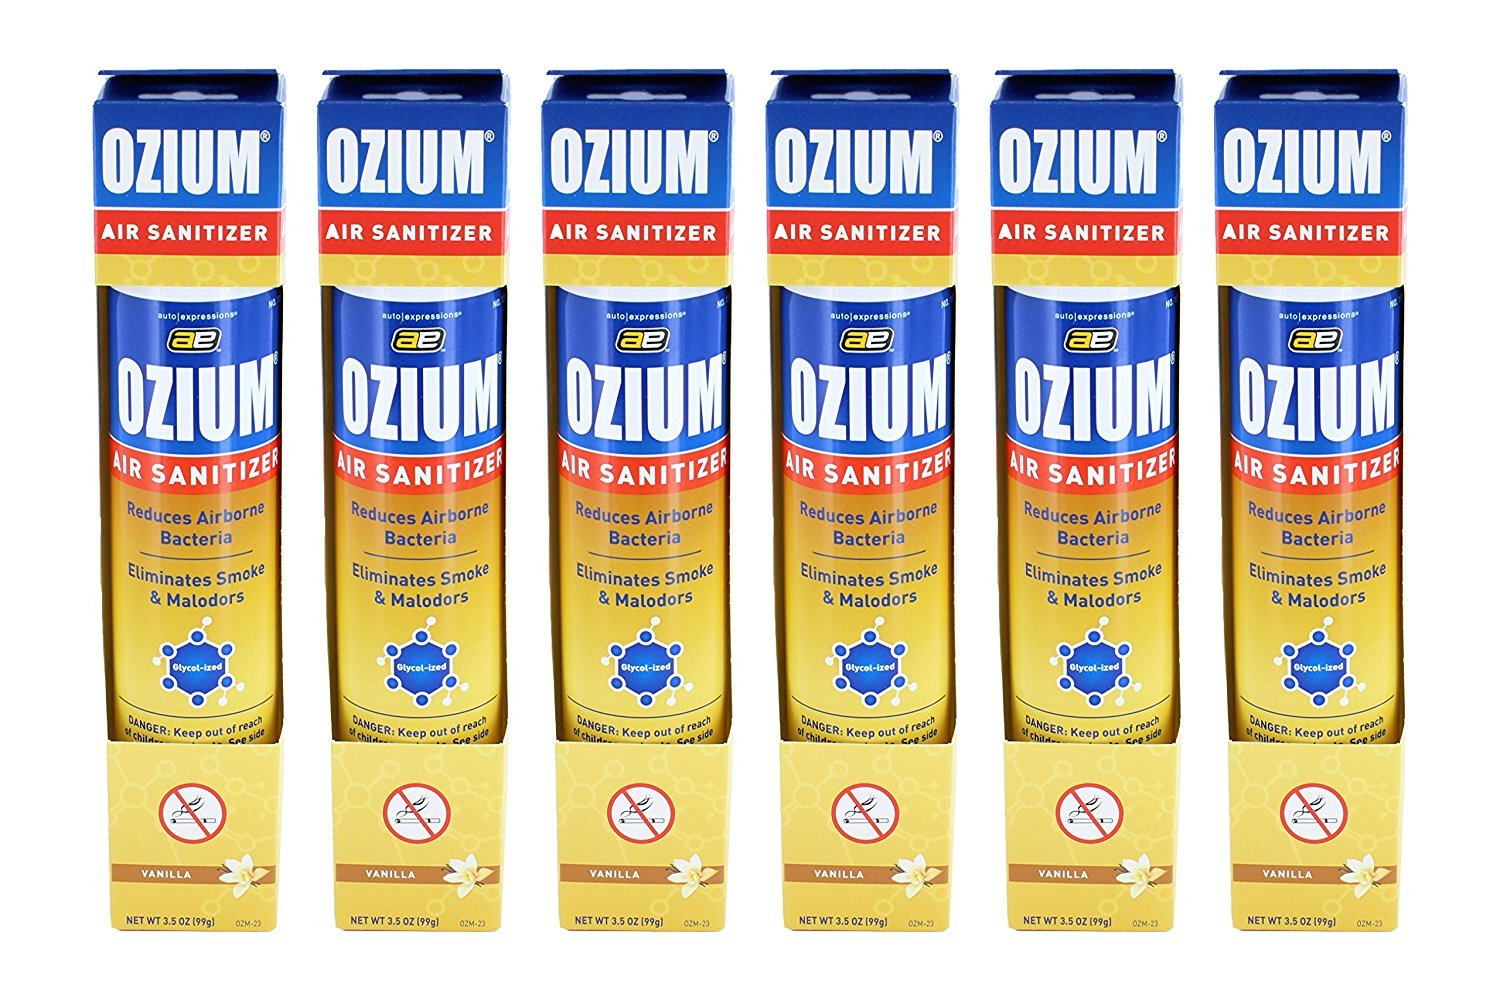 Ozium Smoke & Odor Eliminator Car & Home Air Sanitizer / Freshener, 3.5oz Spray Vanilla Scent - Pack of 6 Kraco OZM-23